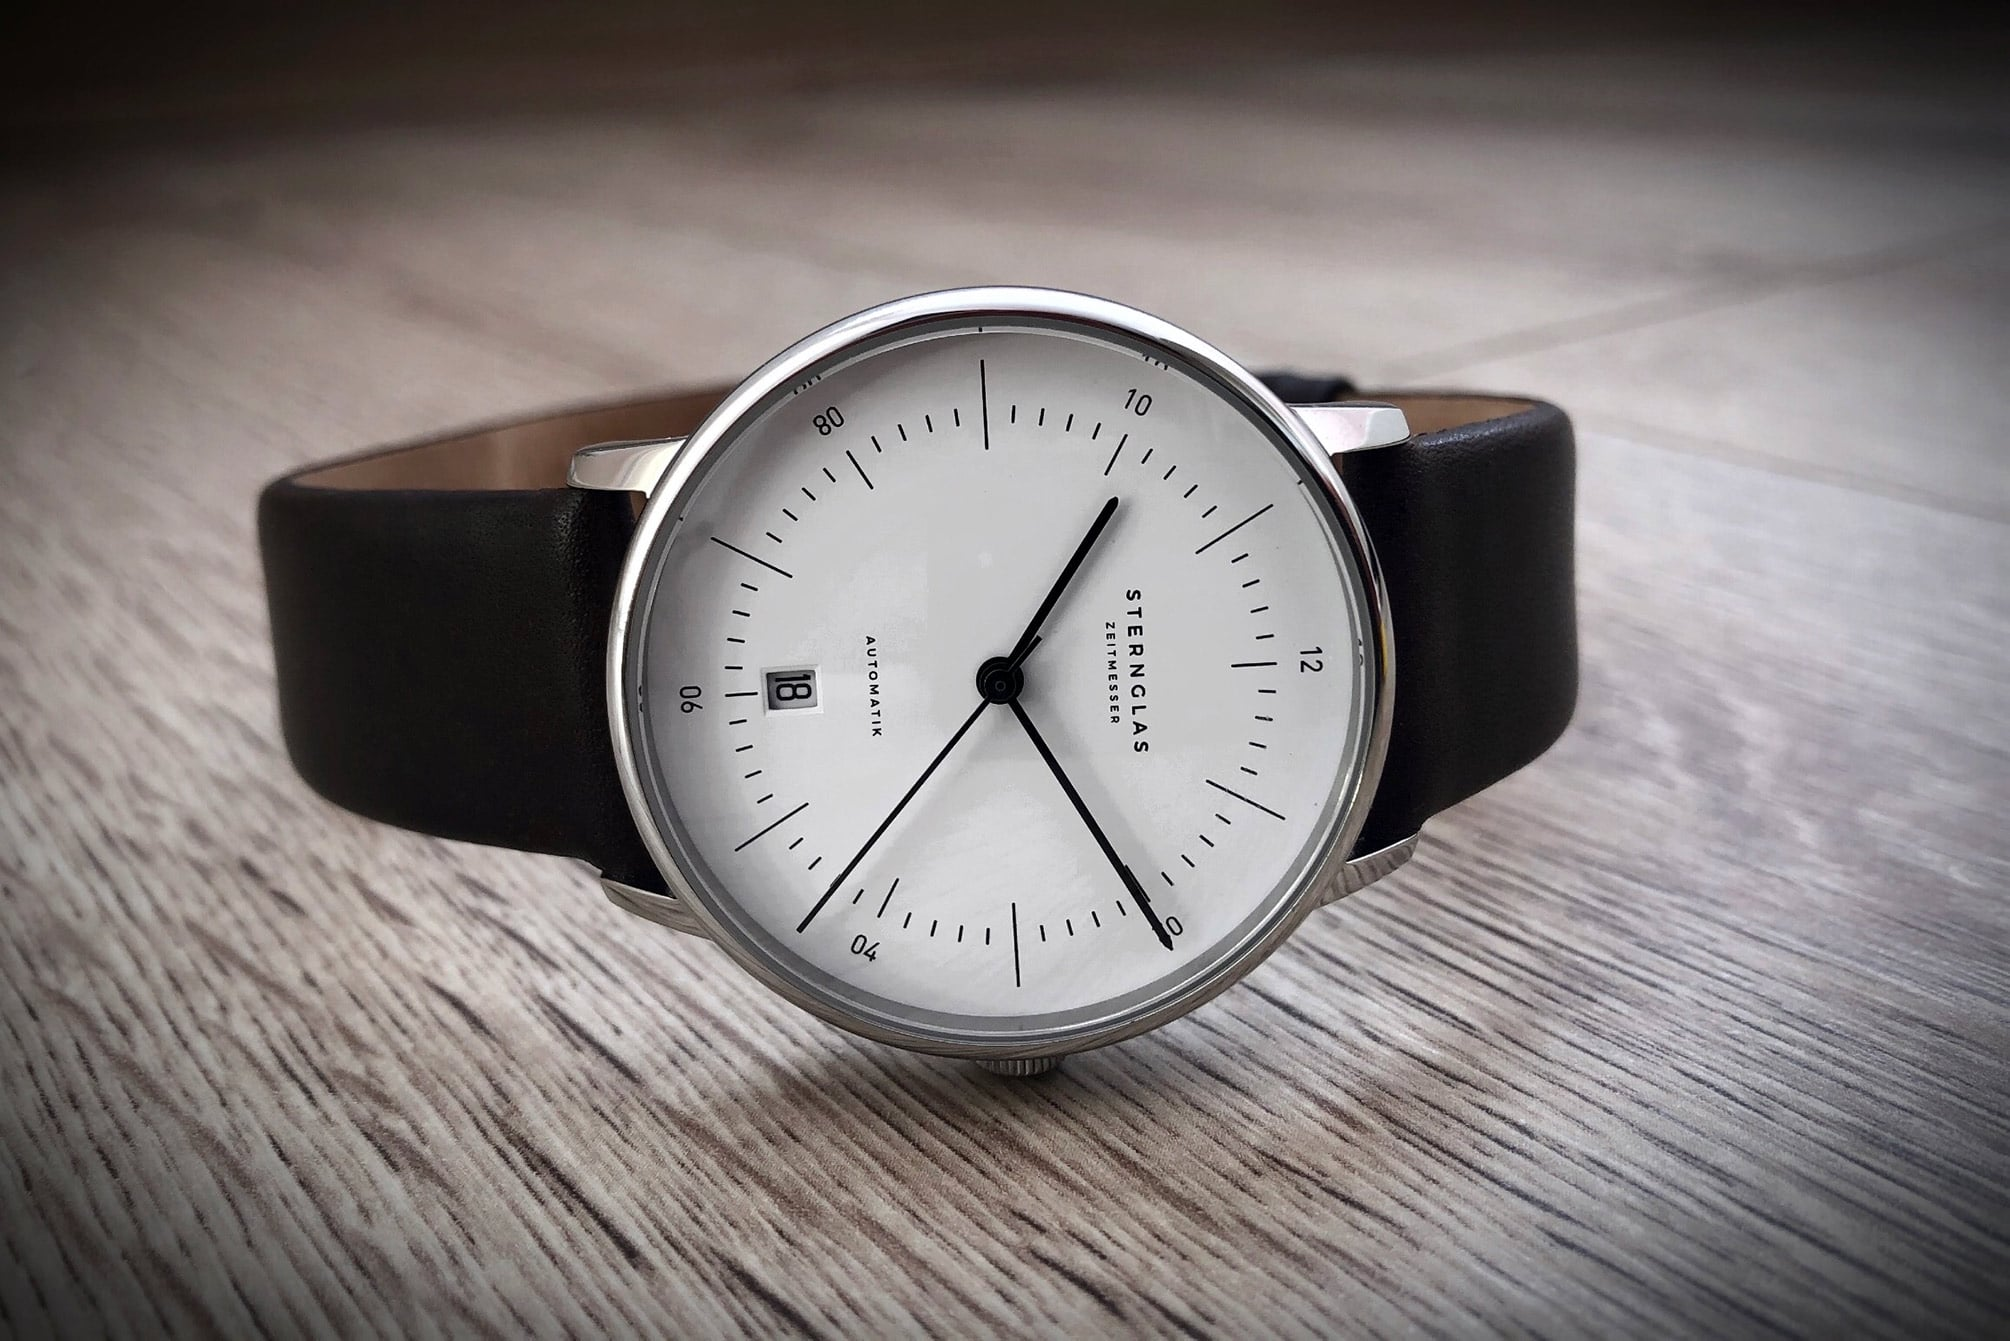 Sternglas Naos Automatic on table